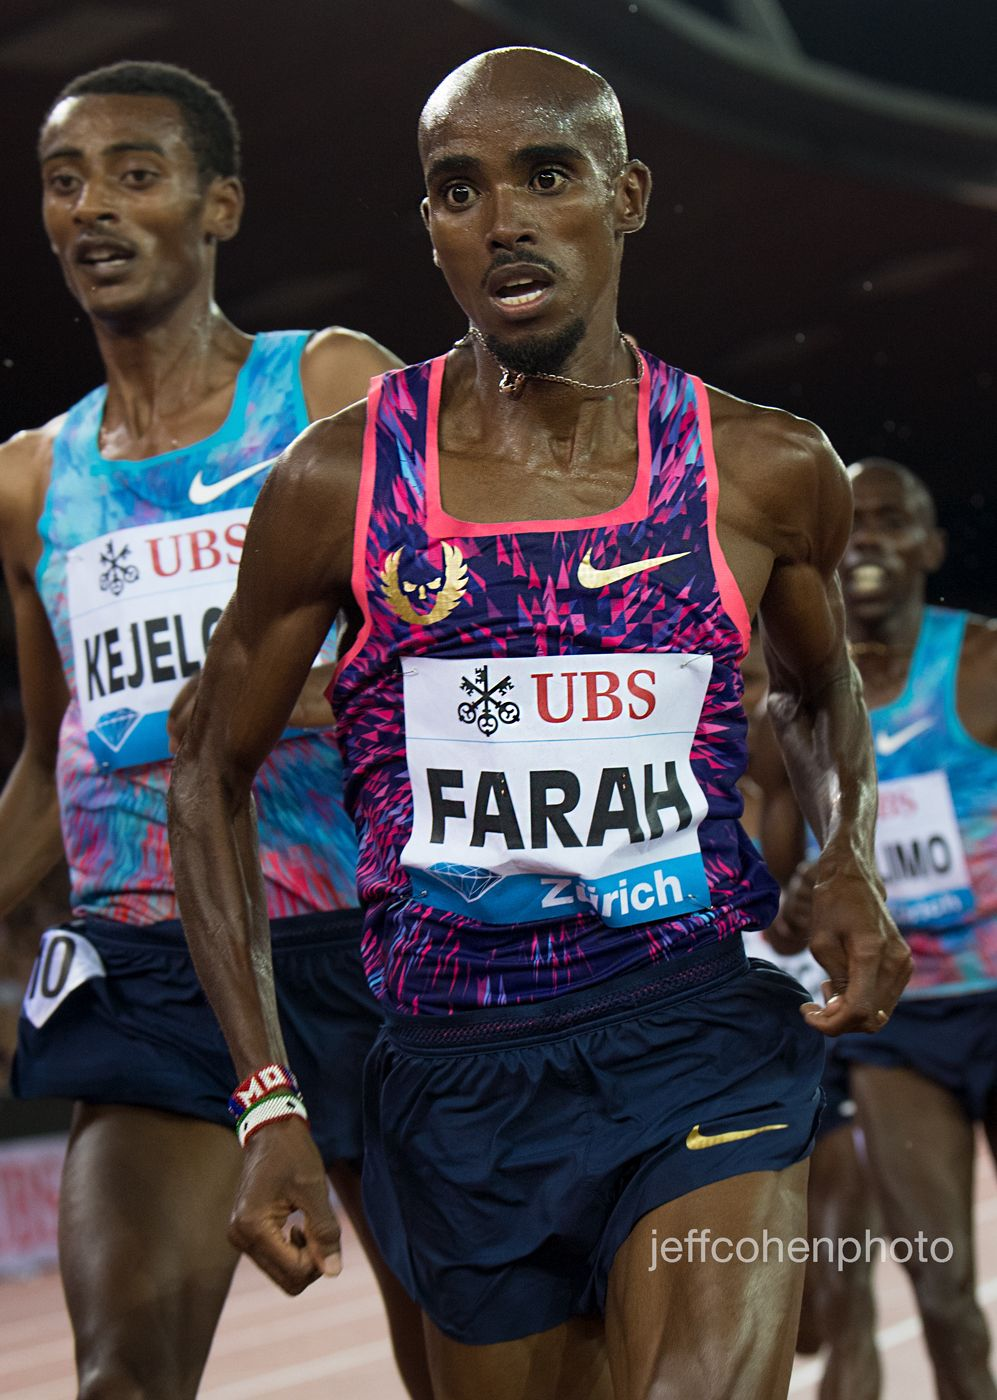 2017-weltklasse-zurich-farah-5000-2--2558--jeff-cohen-photo--web.jpg